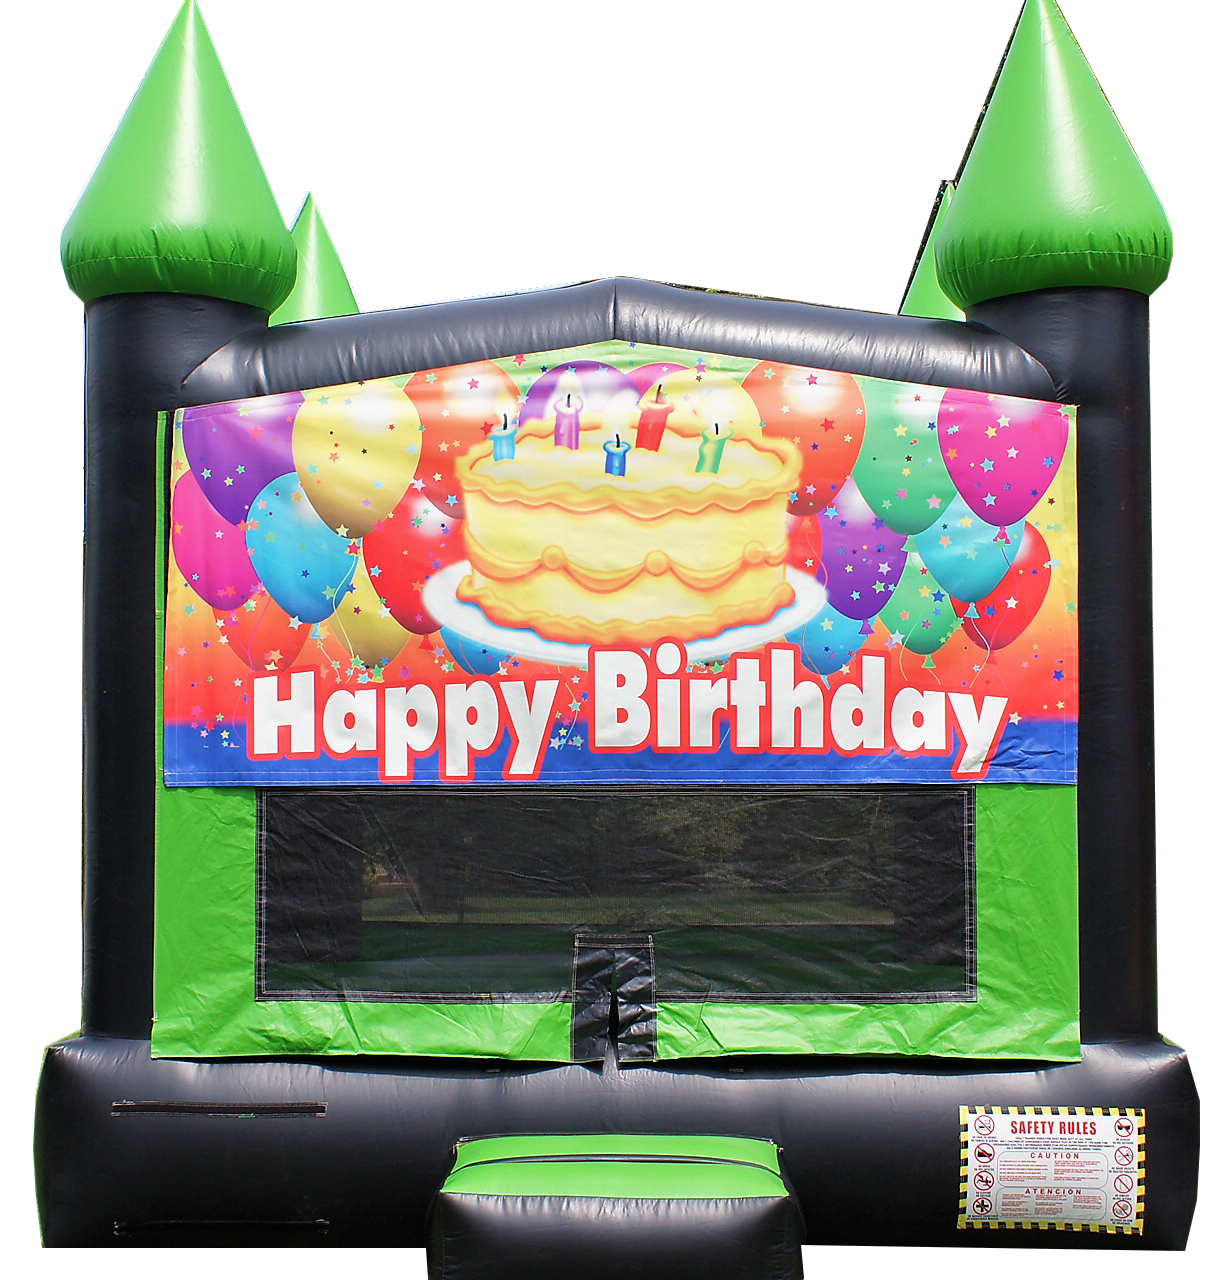 Happy birthday bounce house rentals Murfreesboro